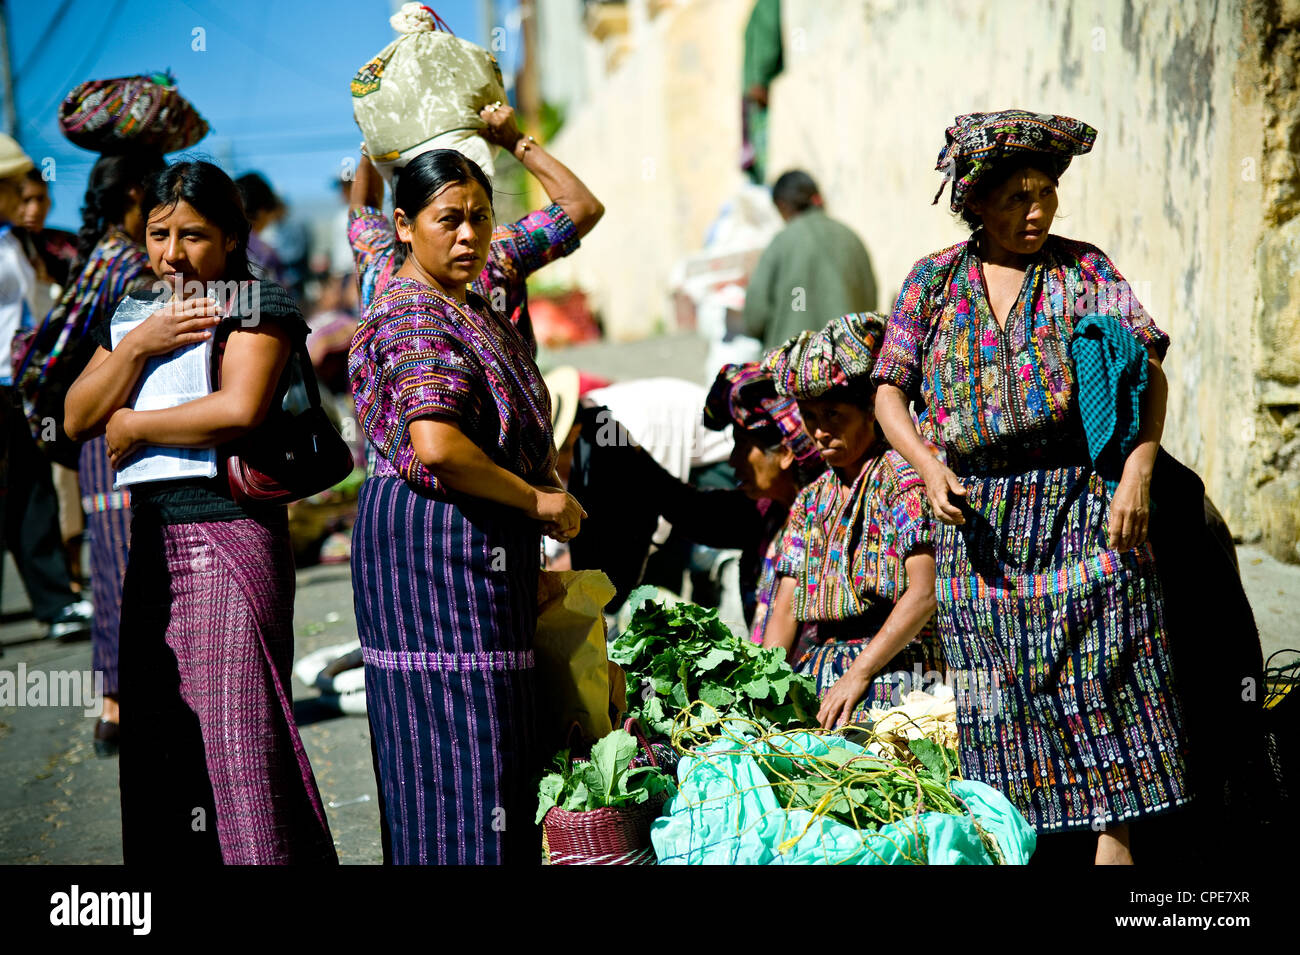 Market at Solola, Western Highlands, Guatemala, Central America - Stock Image